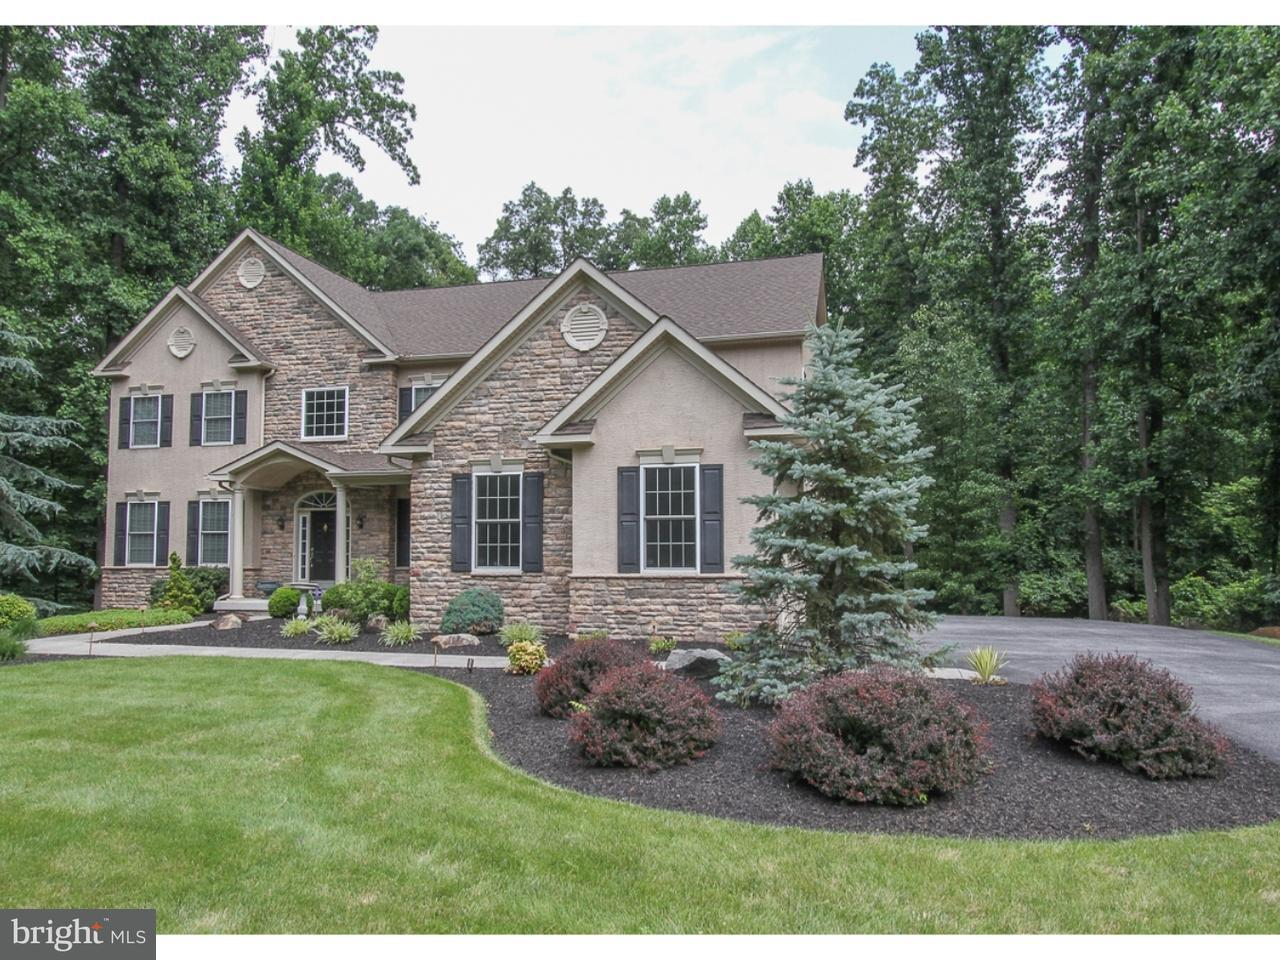 Single Family Home for Sale at 27 FORREST GLEN Drive Limerick, Pennsylvania 19468 United States